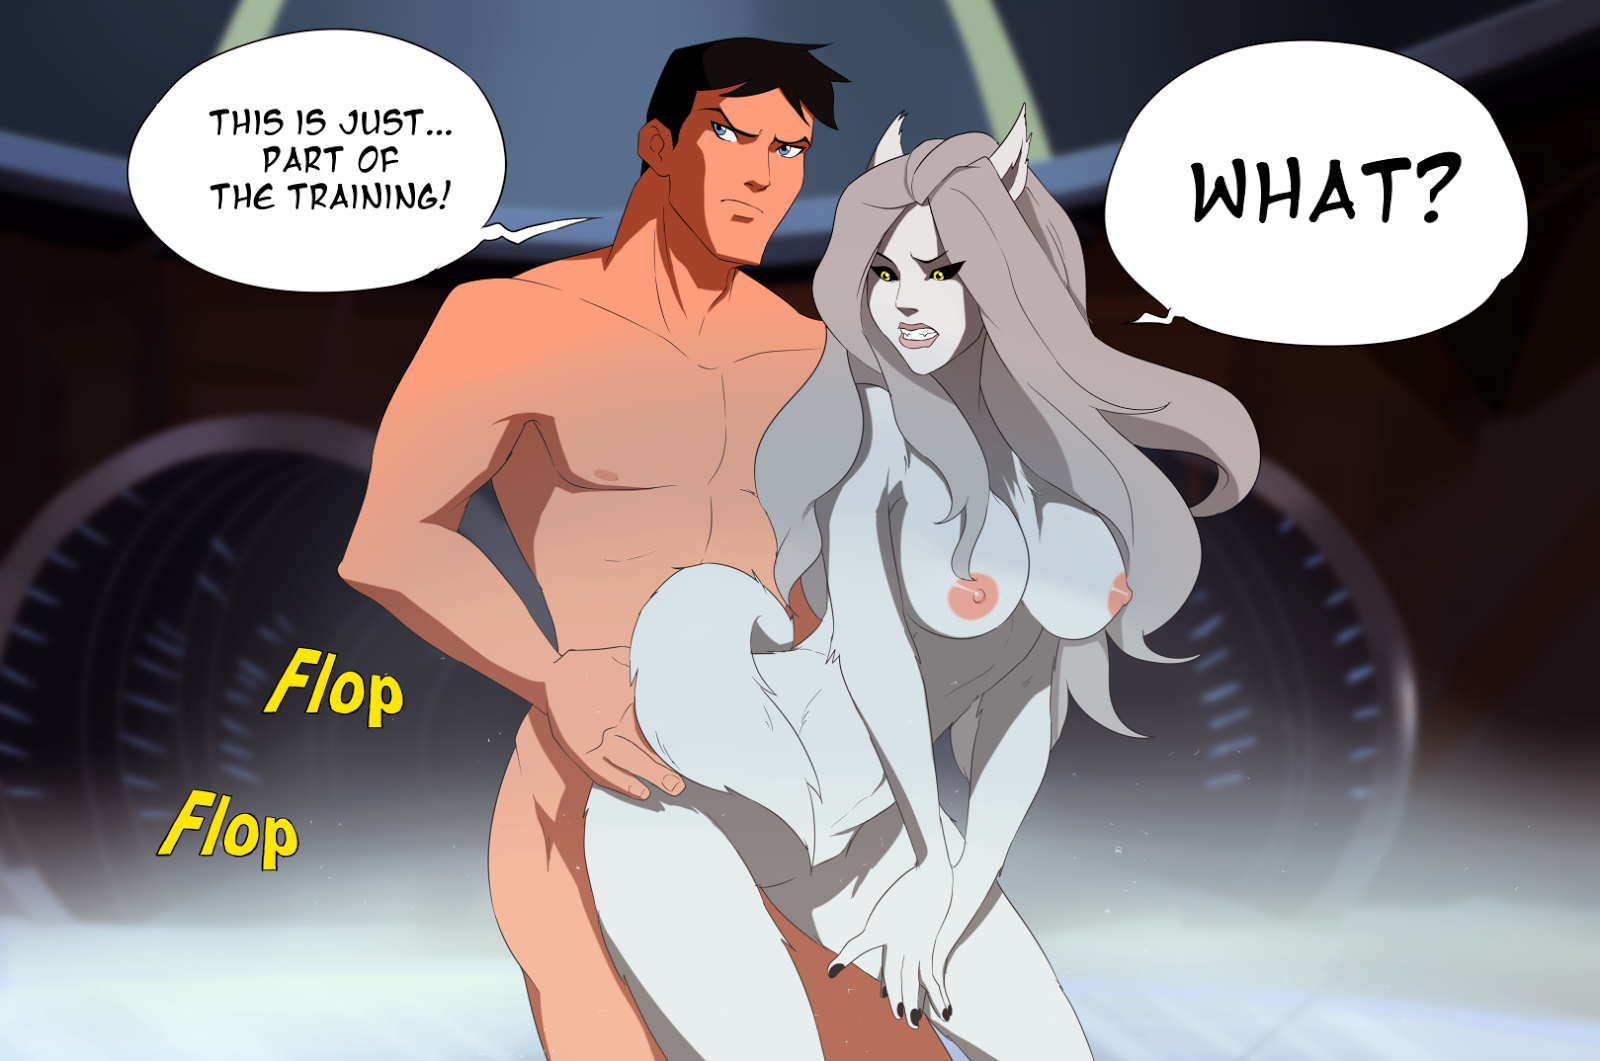 Superboy fuck sexy busty furry female from behind